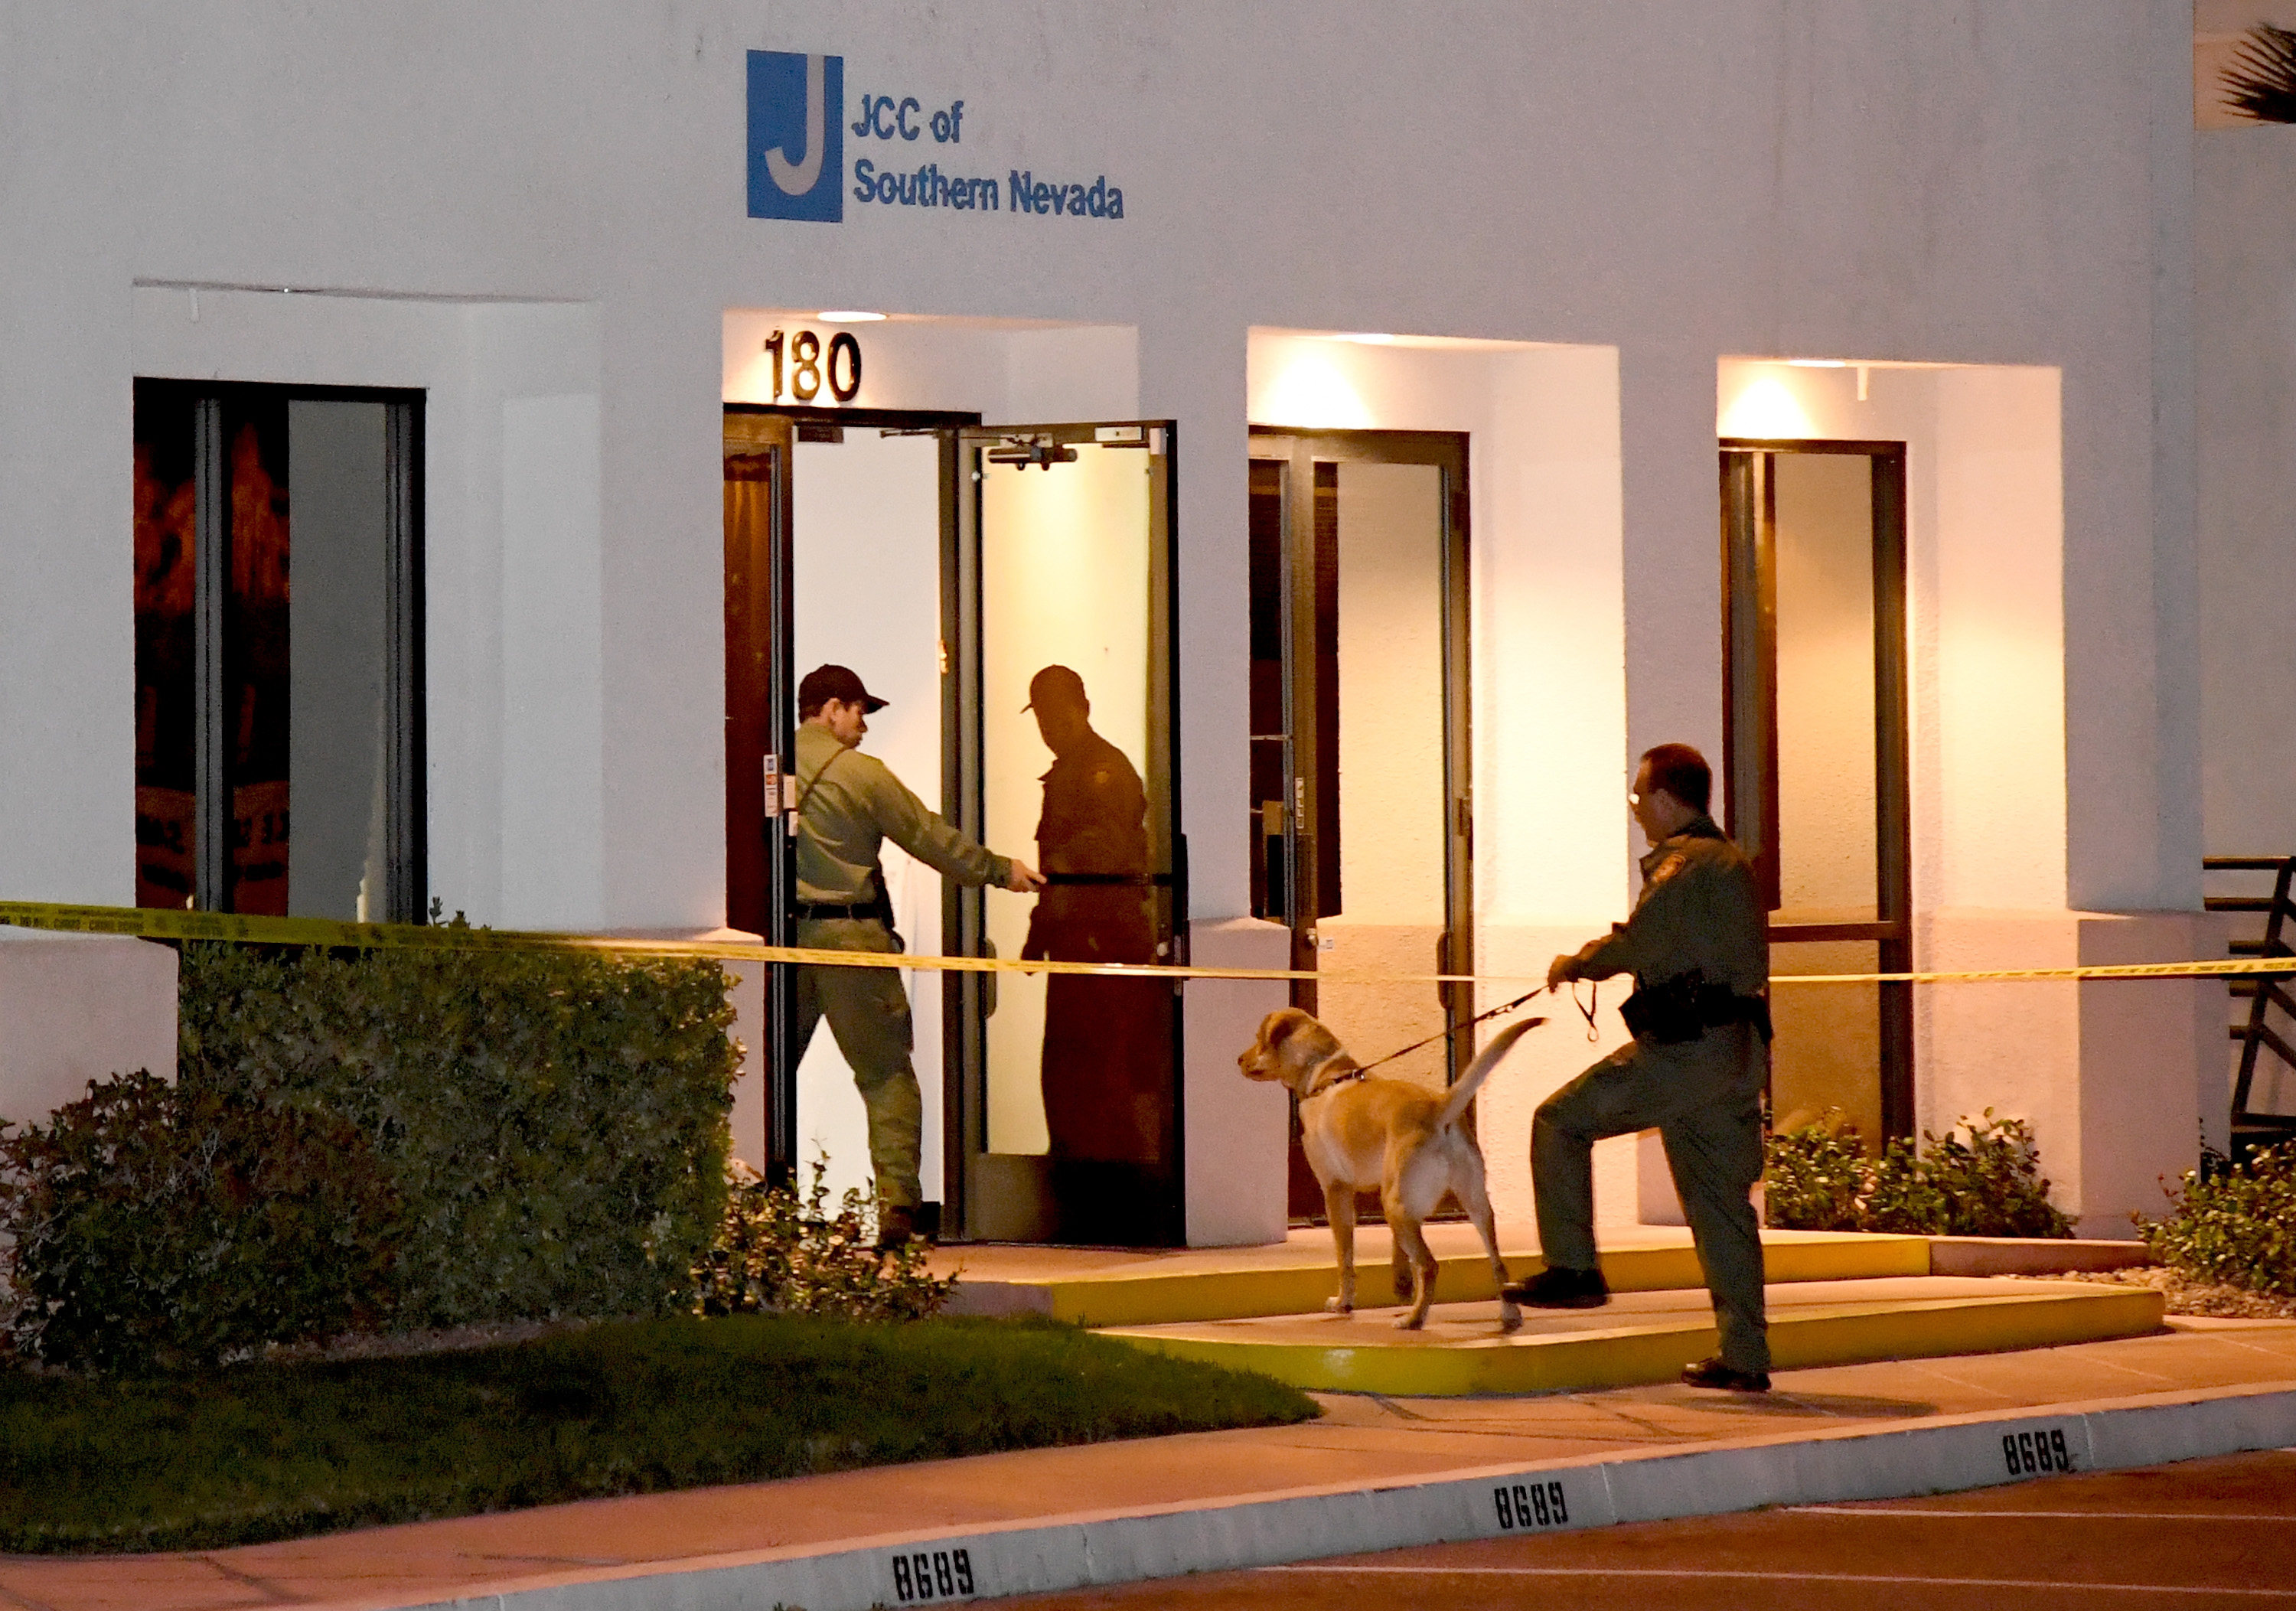 Police officers search the Jewish Community Center of Southern Nevada after an employee received a suspicious phone call that prompted an evacuation on February 26, 2017 in Las Vegas, Nevada.